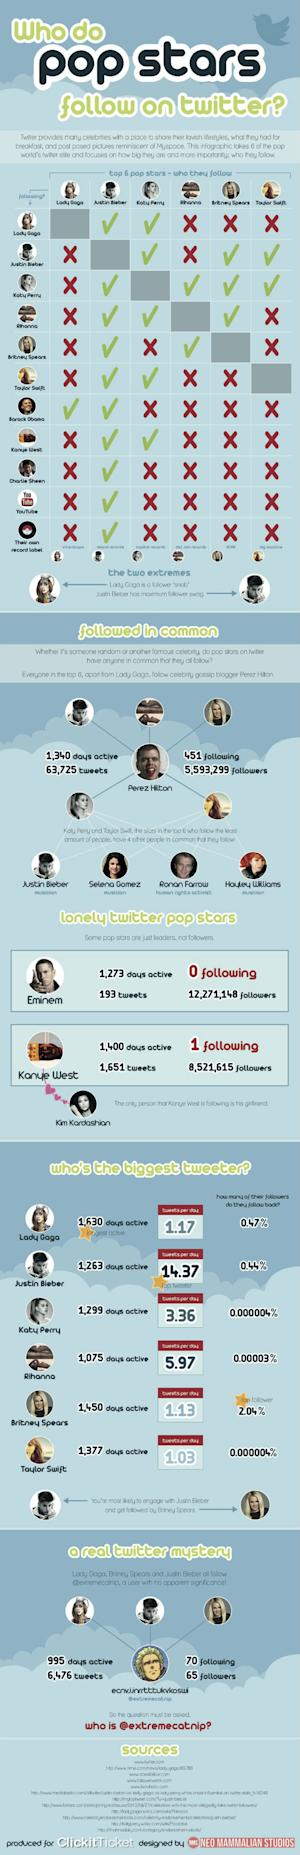 Whom Do Pop Stars Follow on Twitter? [INFOGRAPHIC]